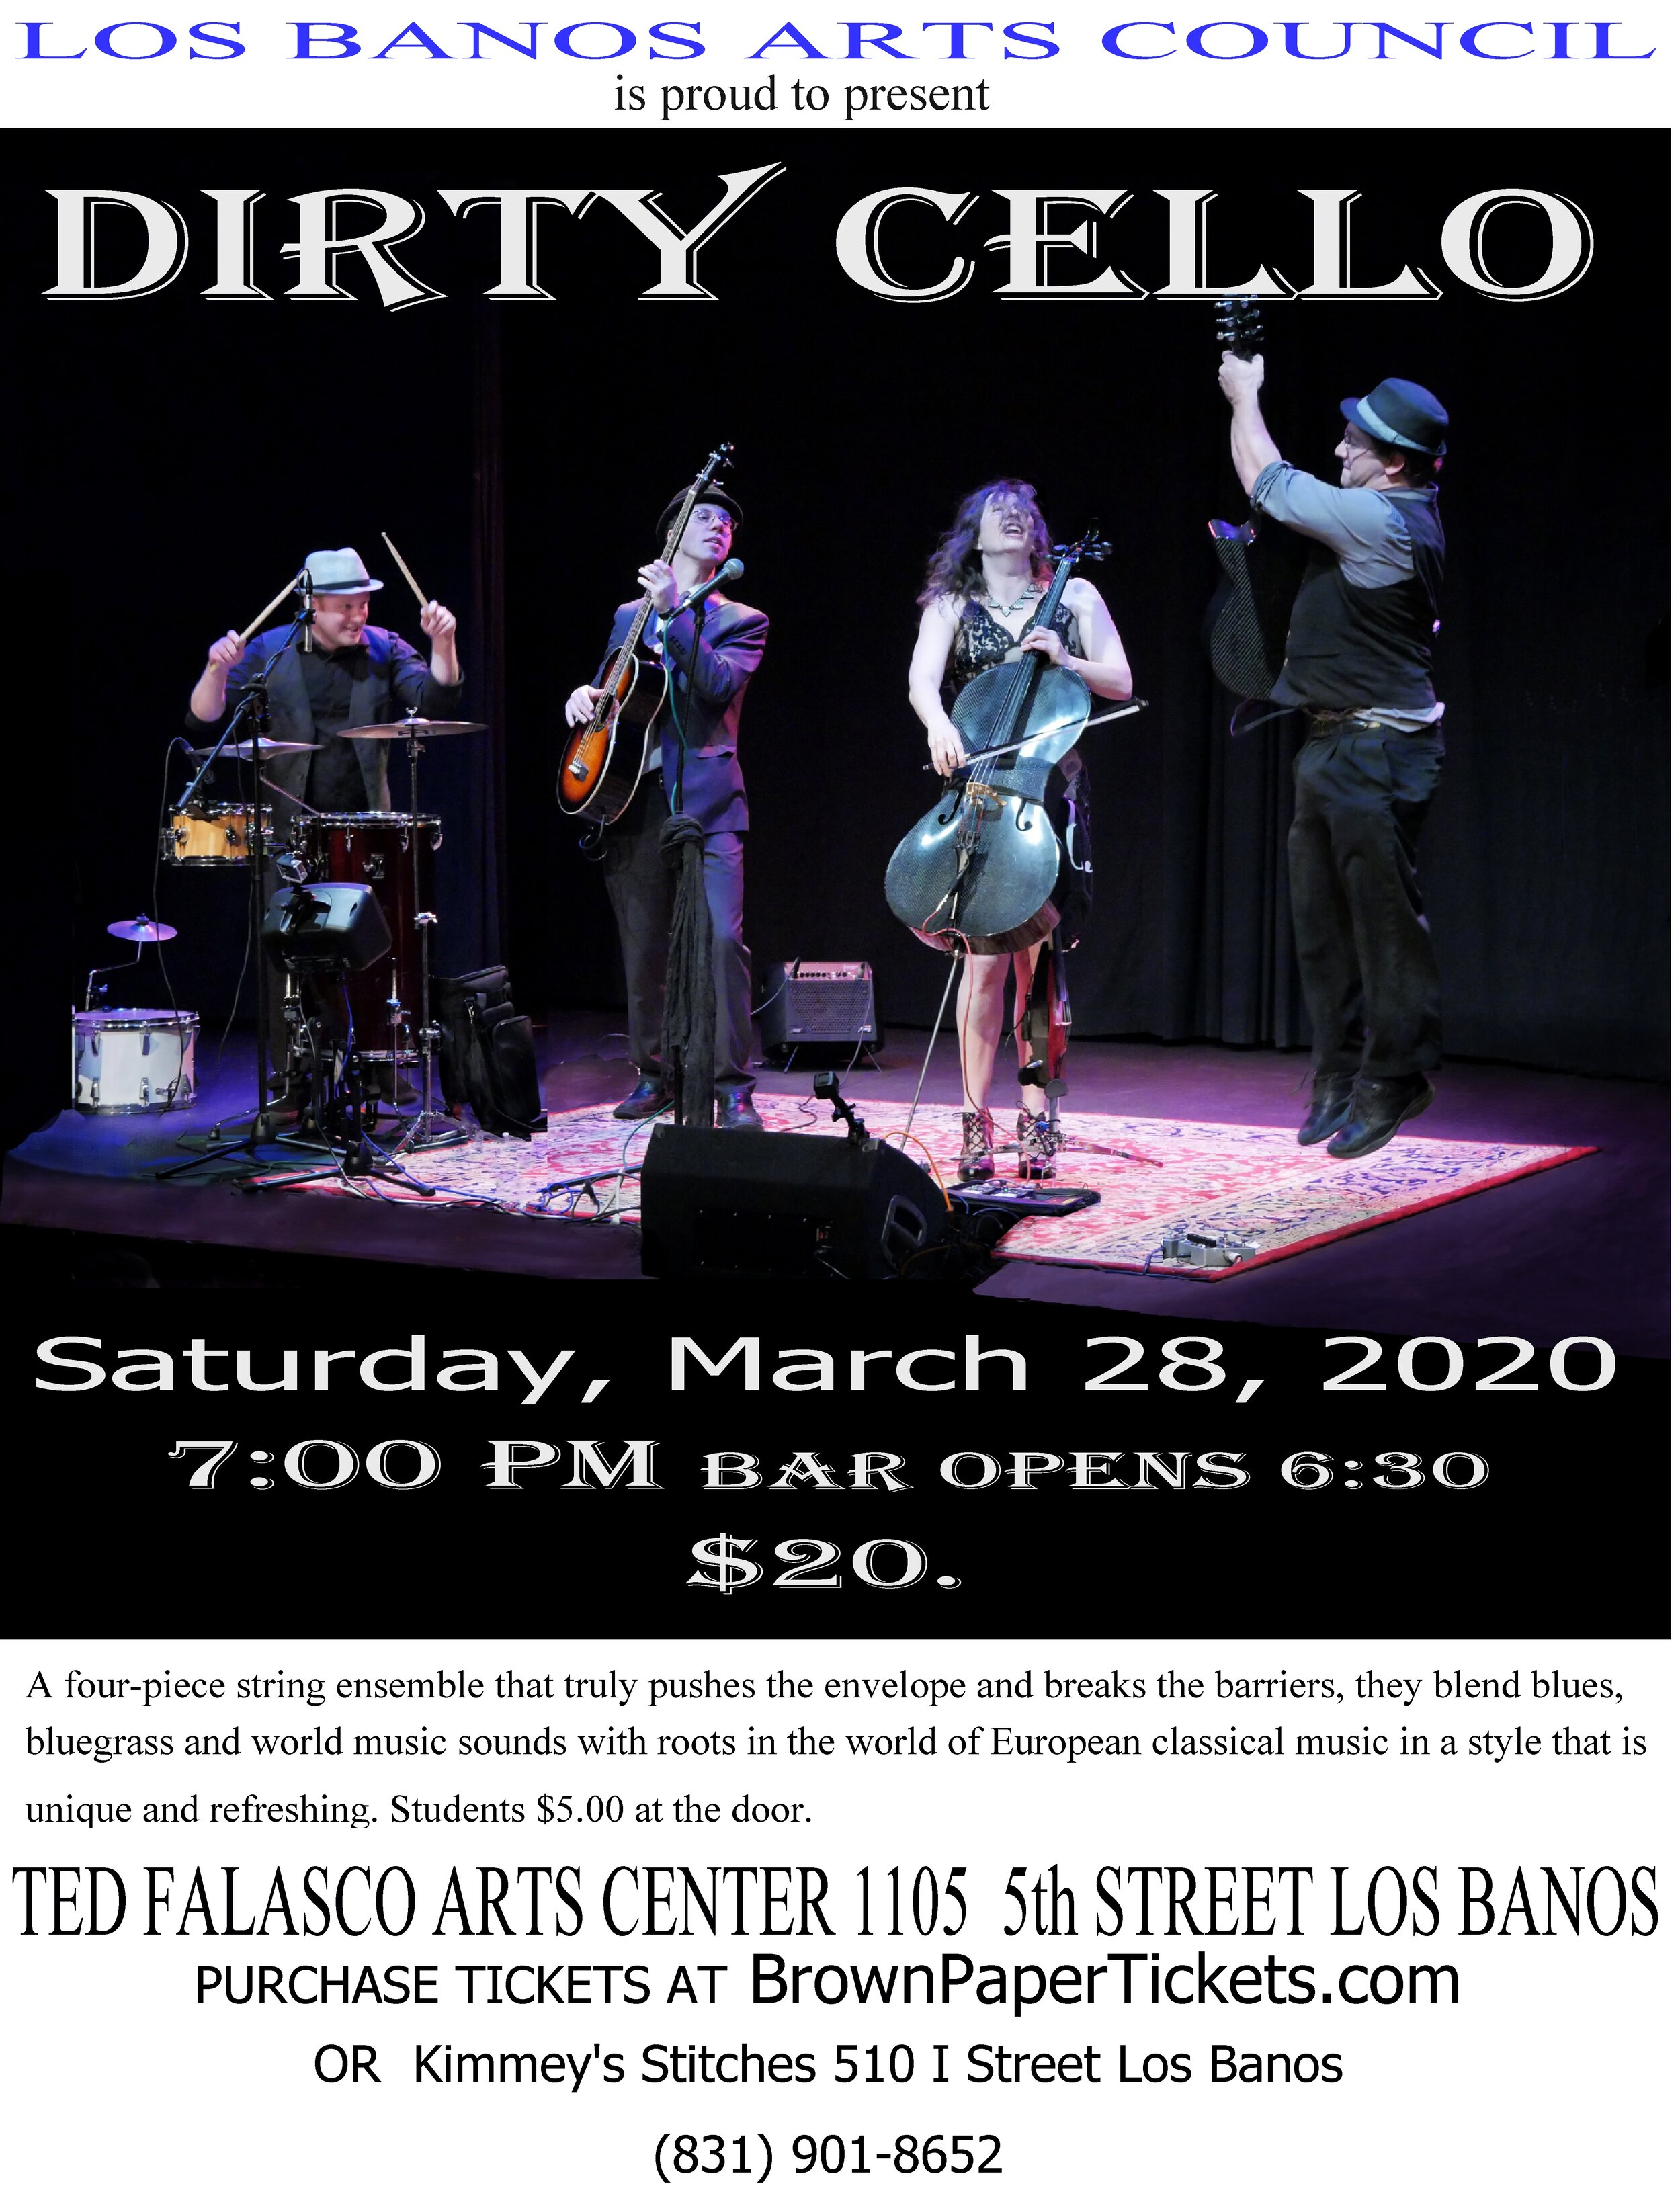 dirty cello poster 2020.jpg